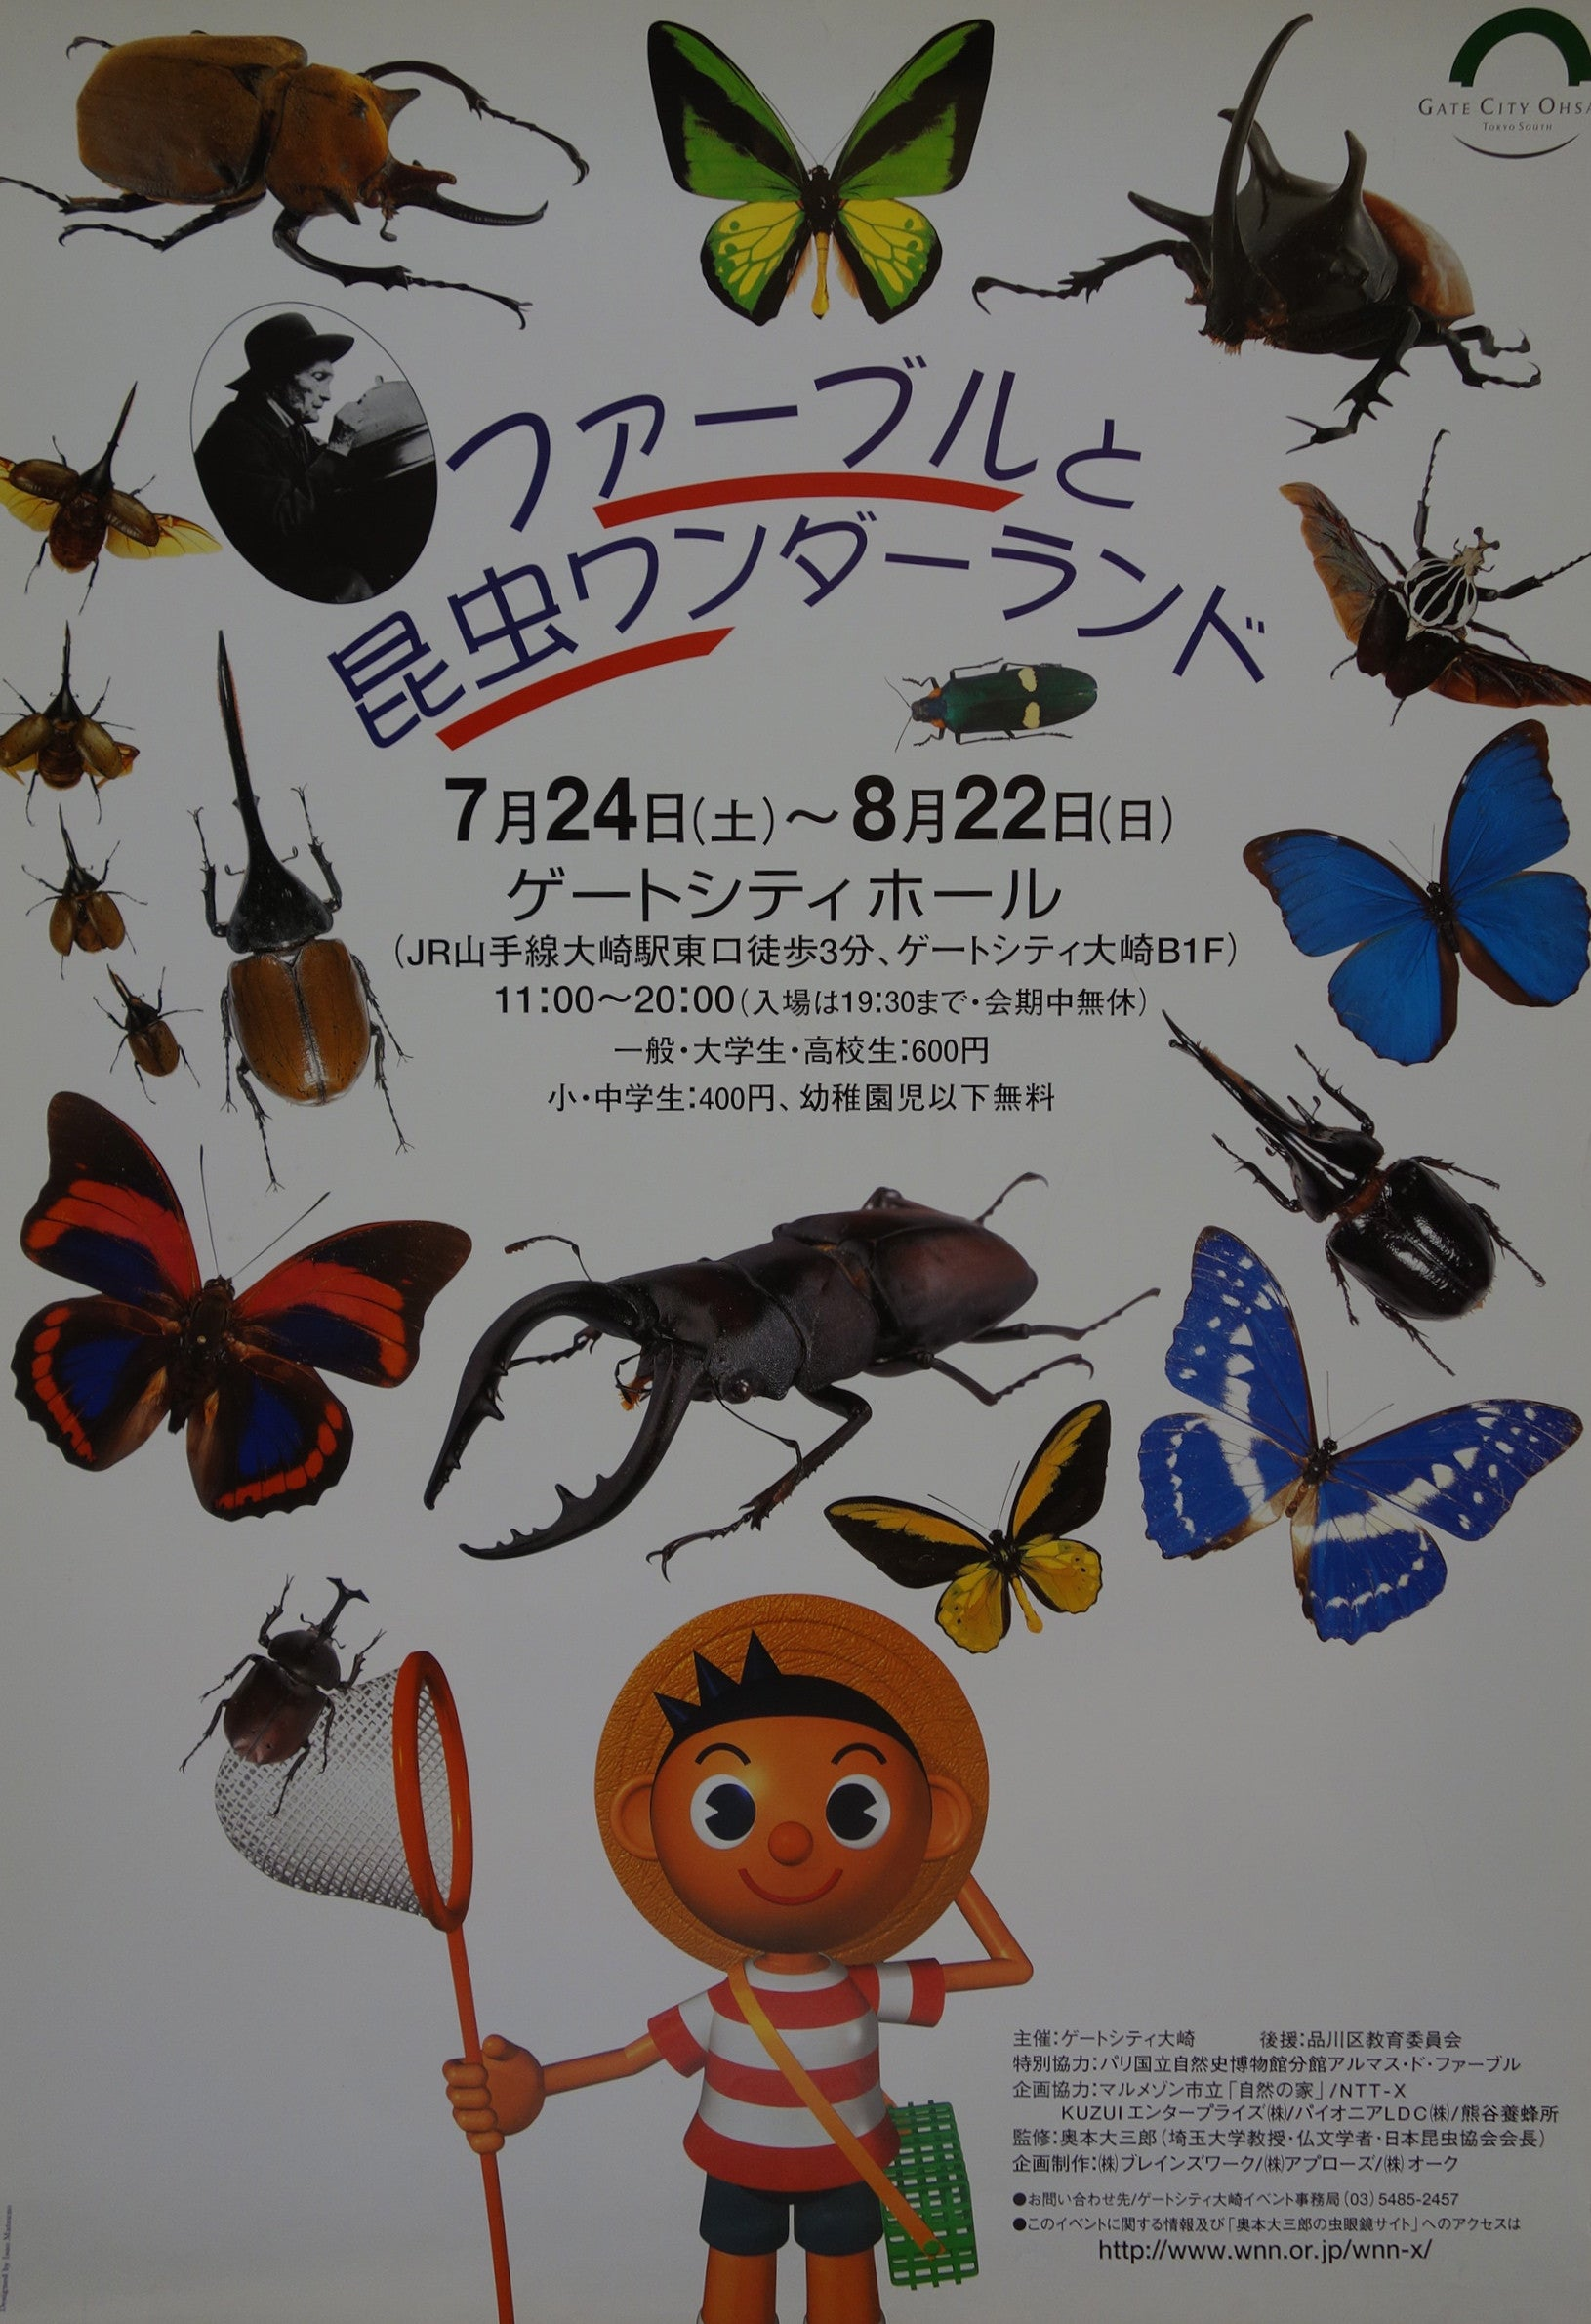 Fabre and insects' wonder land